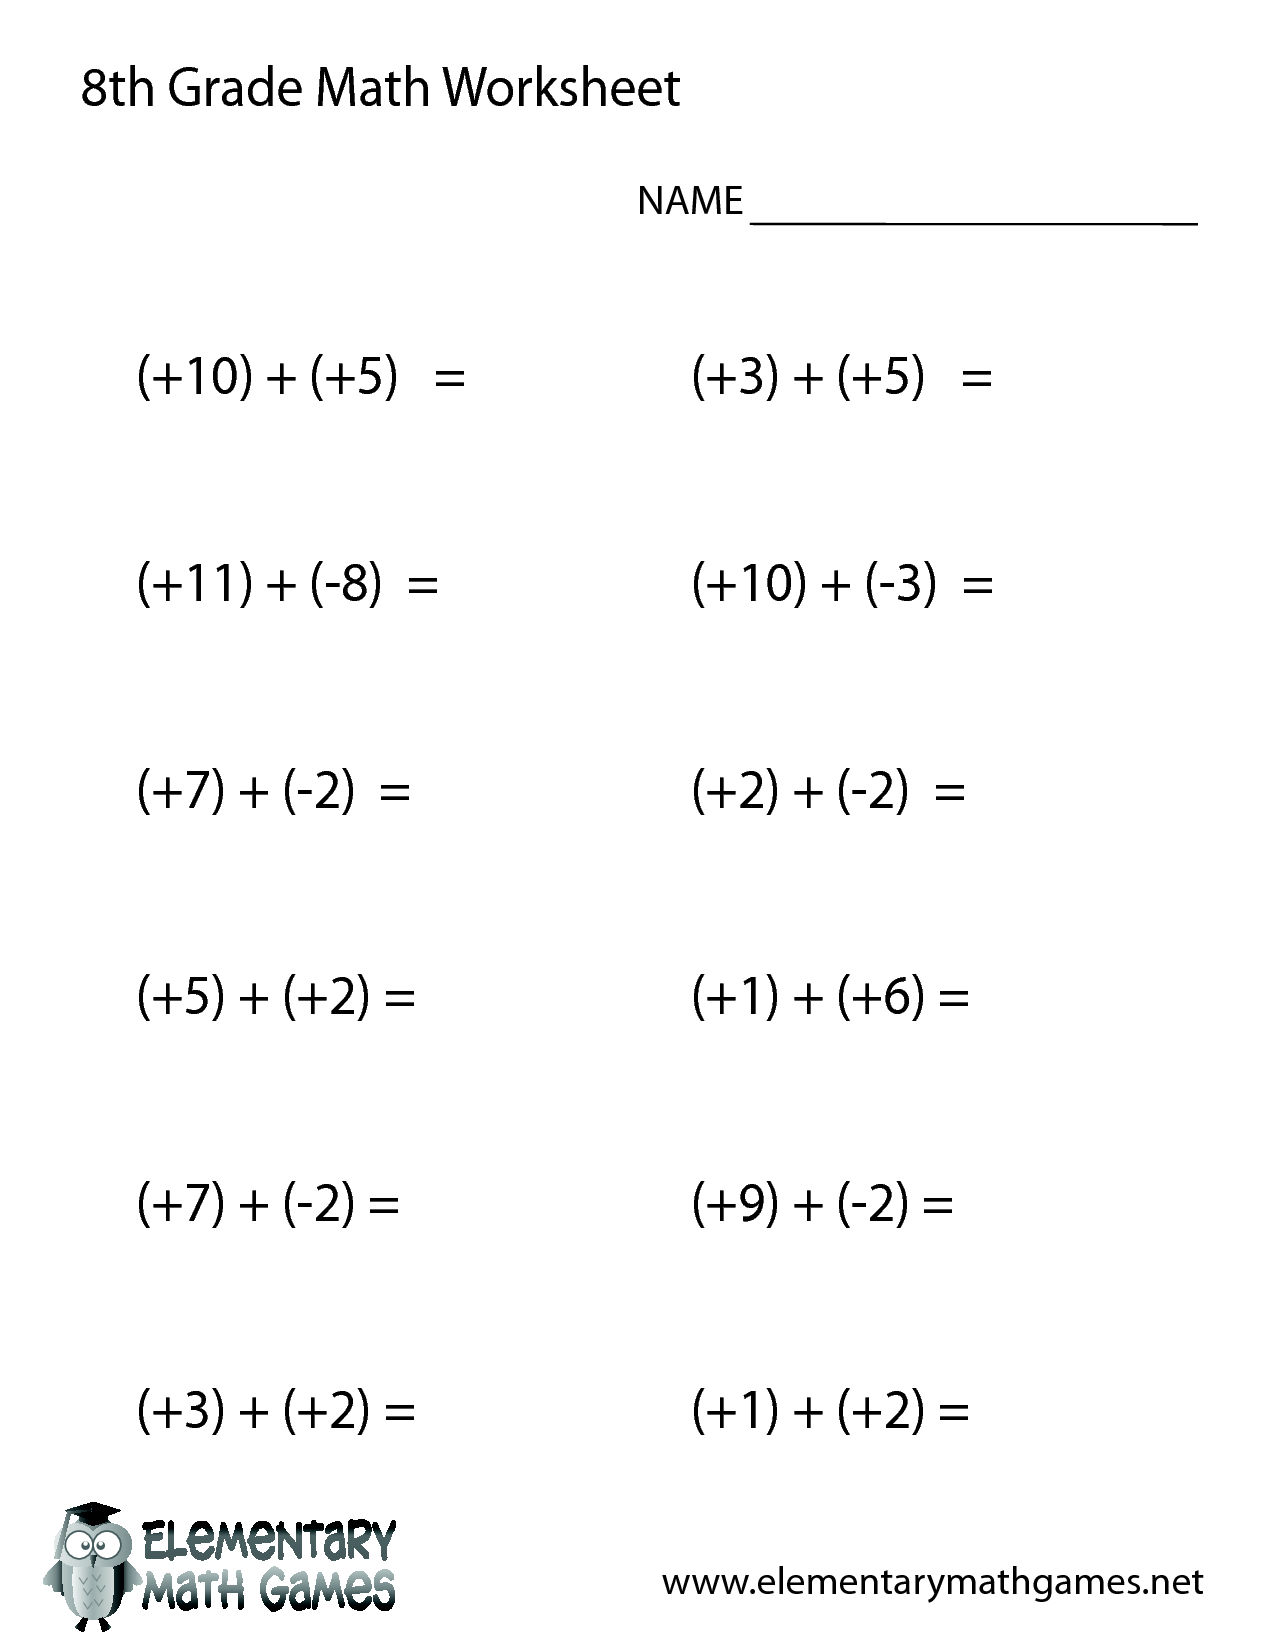 17 Best Images Of 8th Grade Math Practice Worksheets